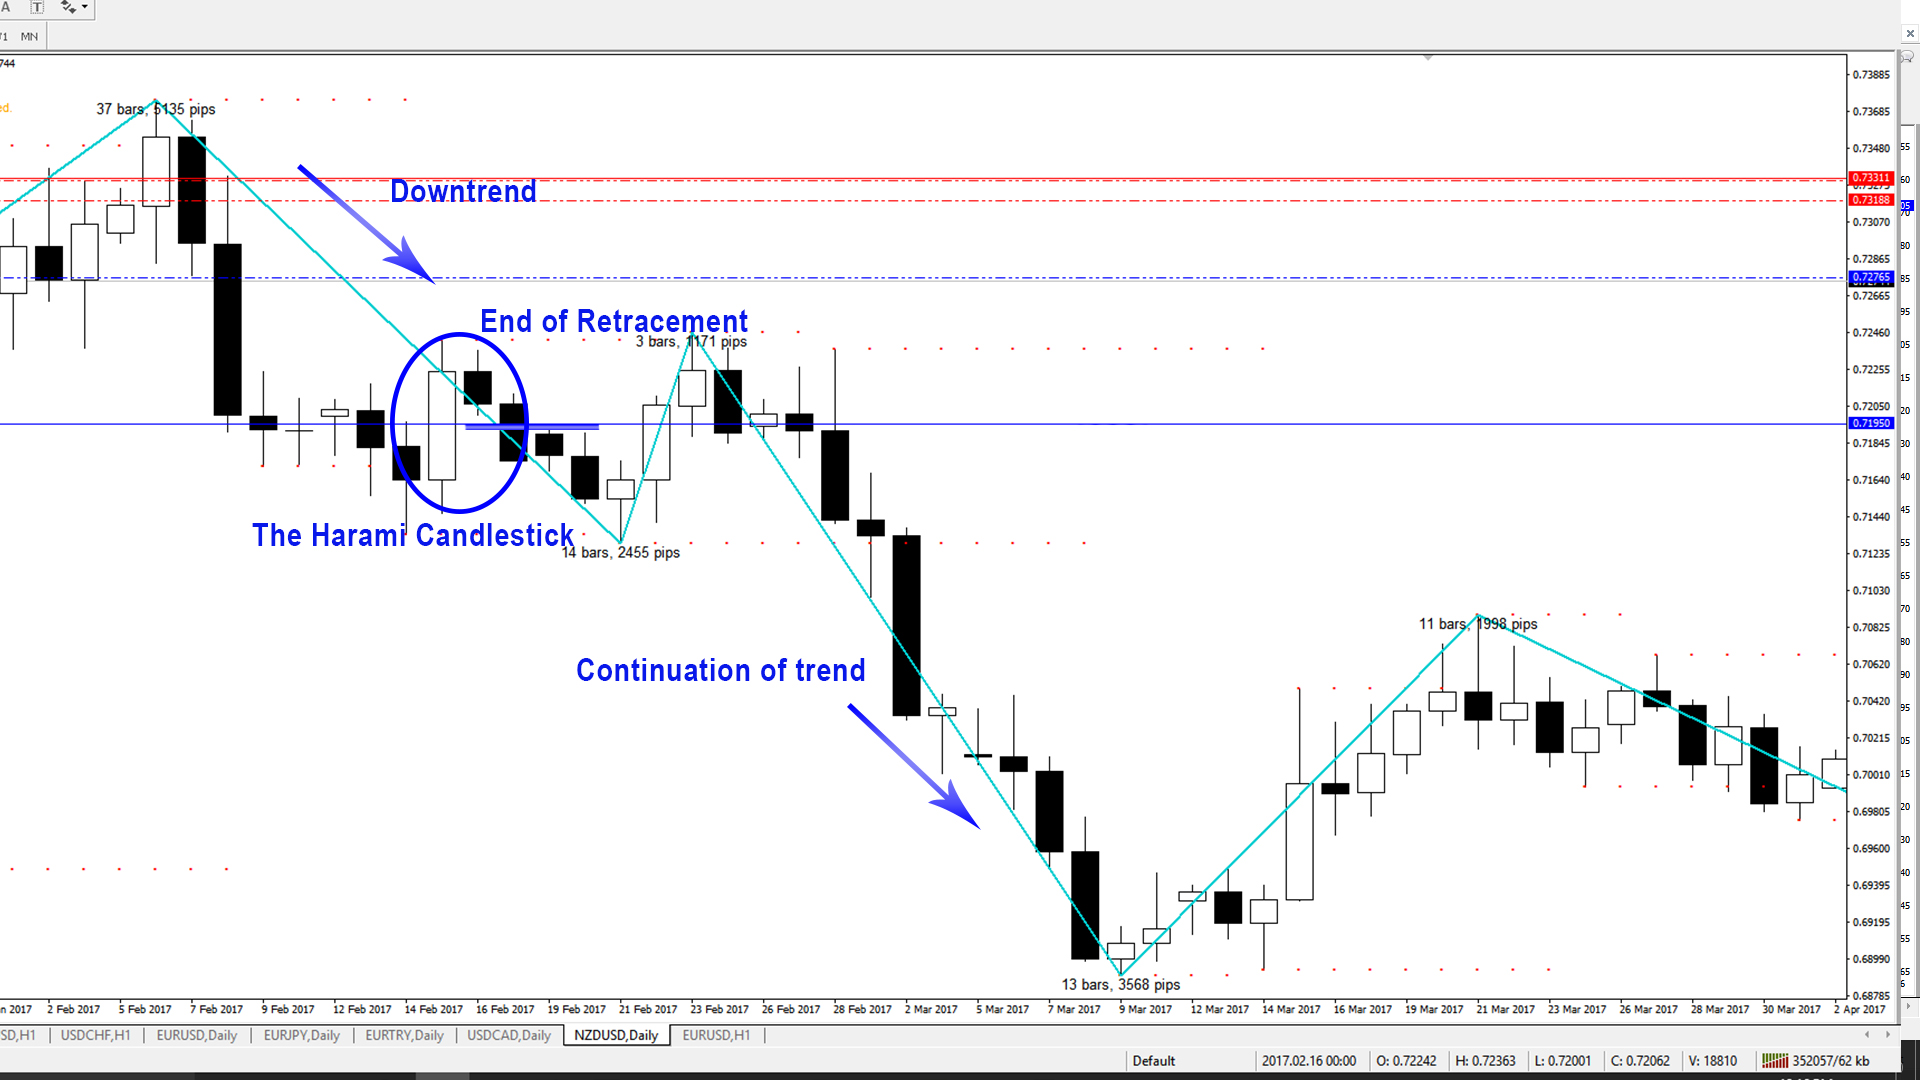 Candlestick Patterns - The Harami - Downtrend 2